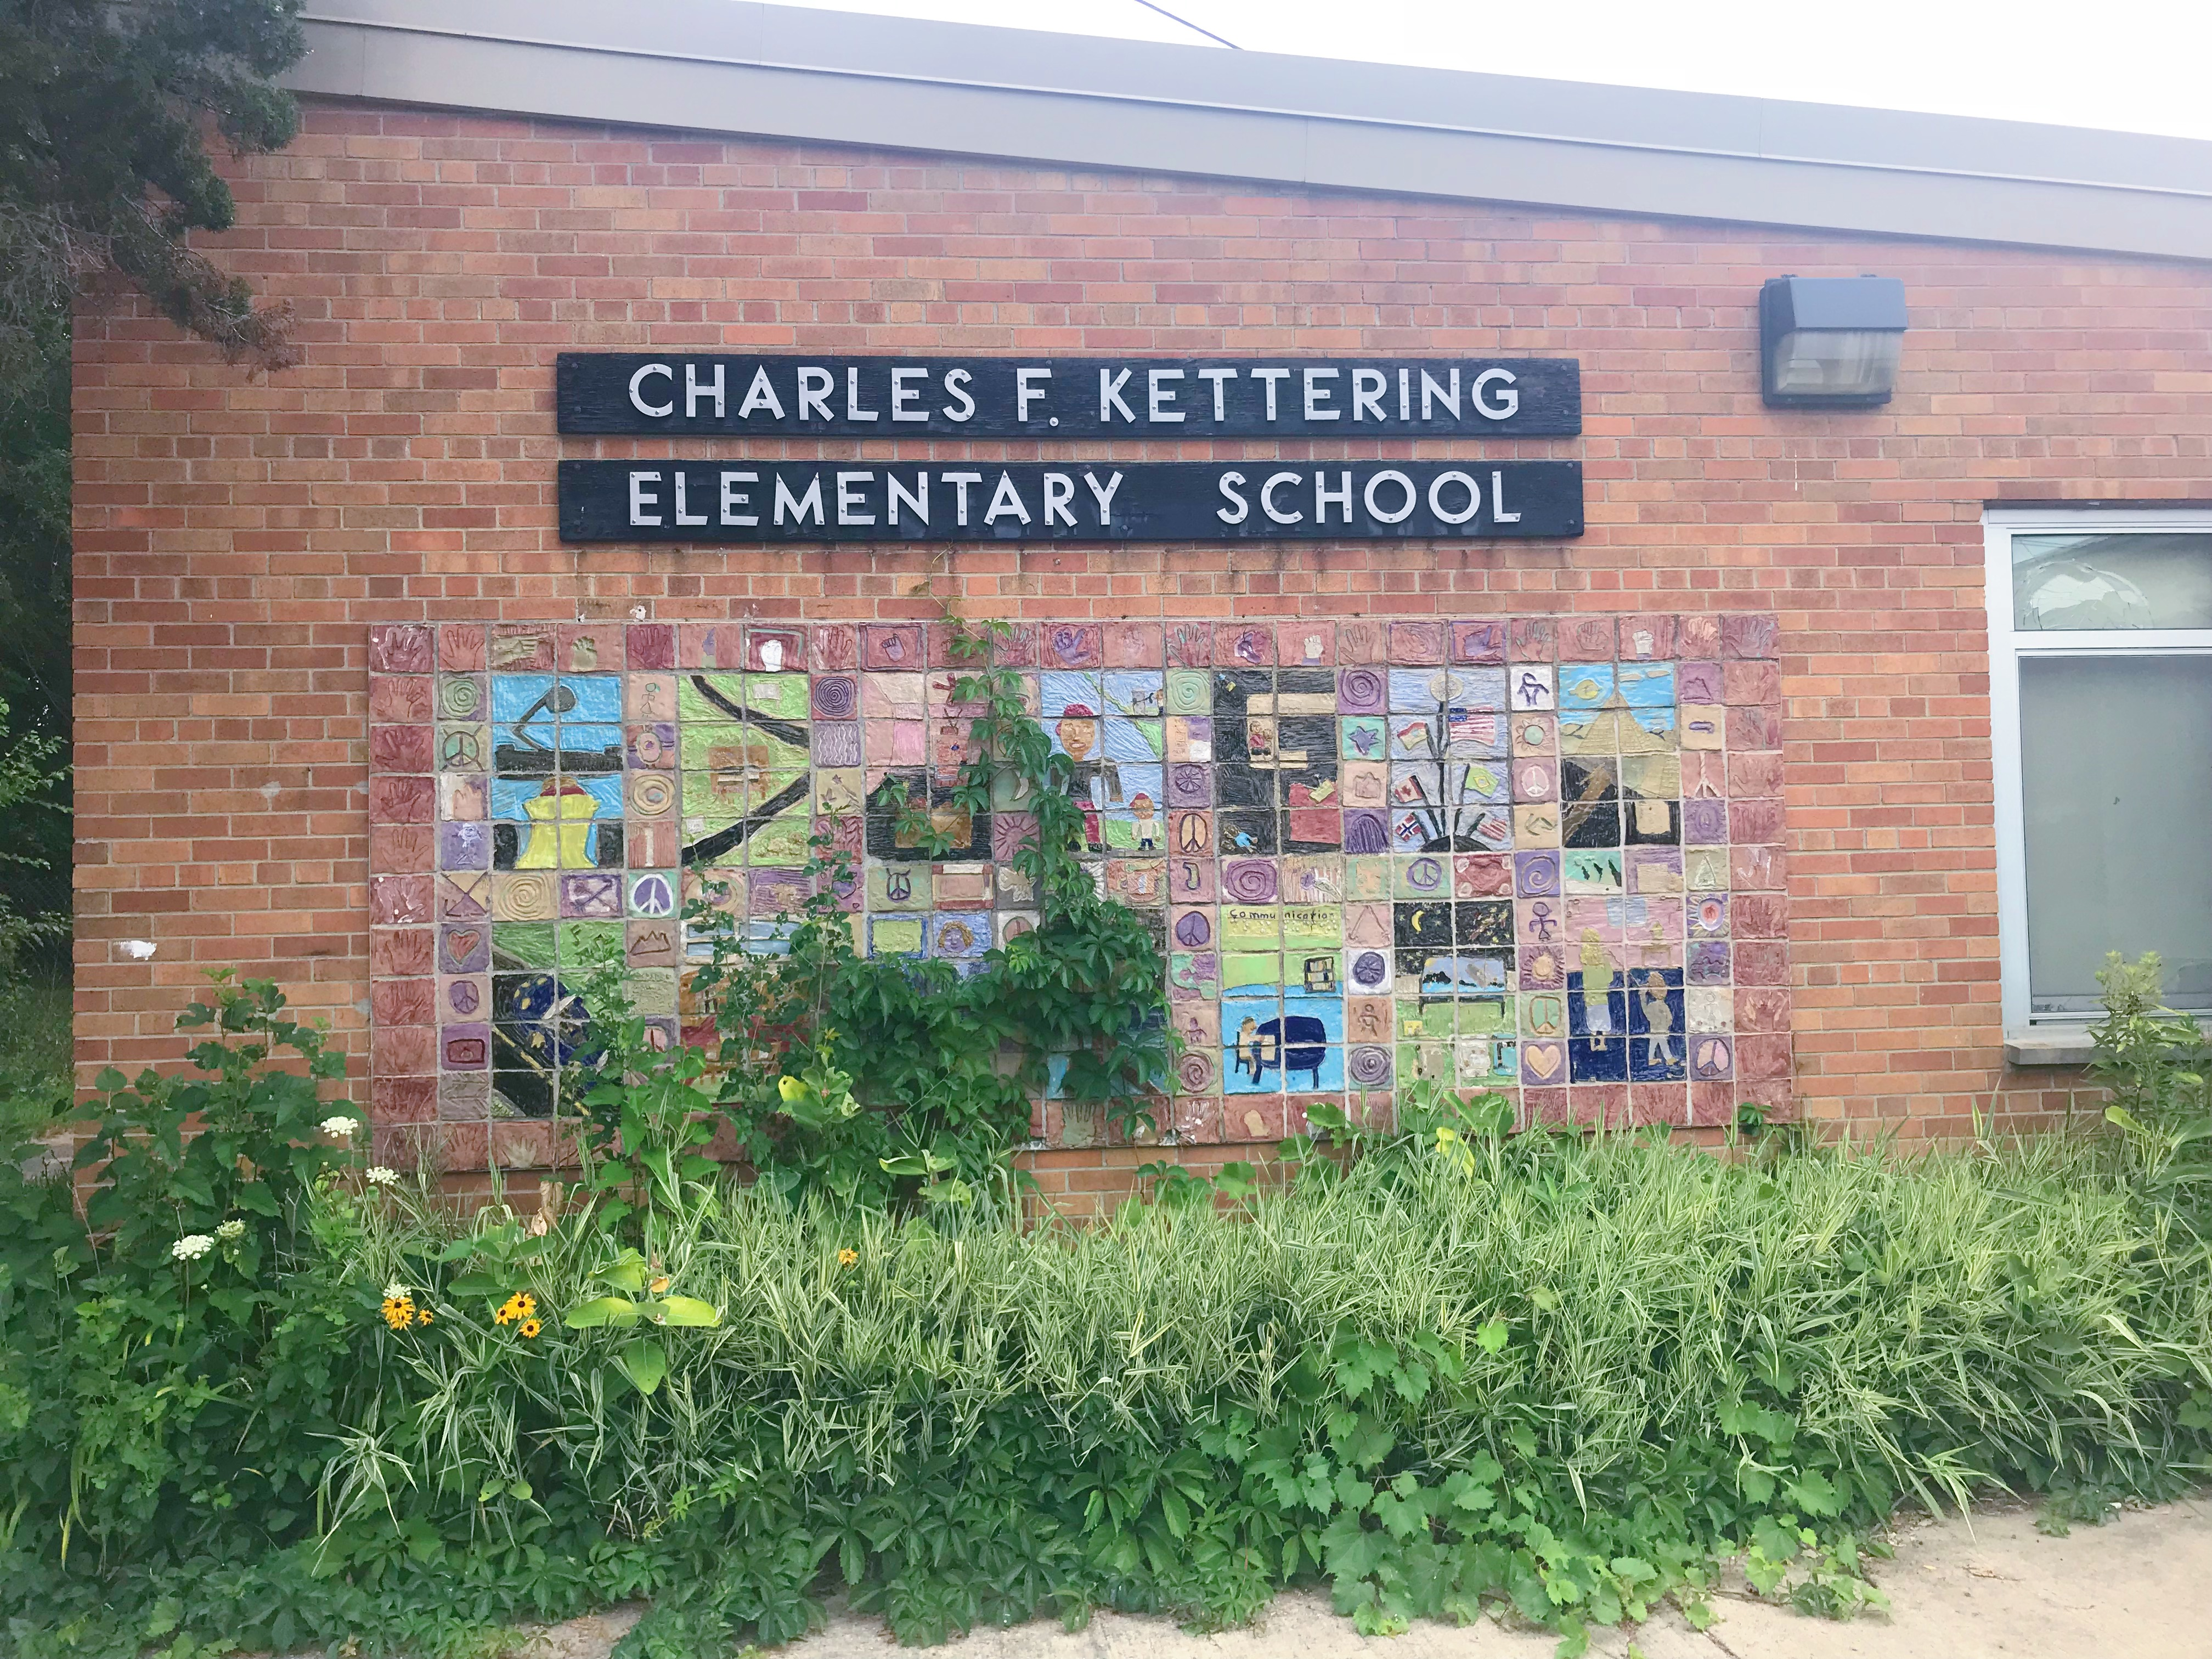 Charles F. Kettering Elementary School in Ypsilanti, which is condemned and deserted.